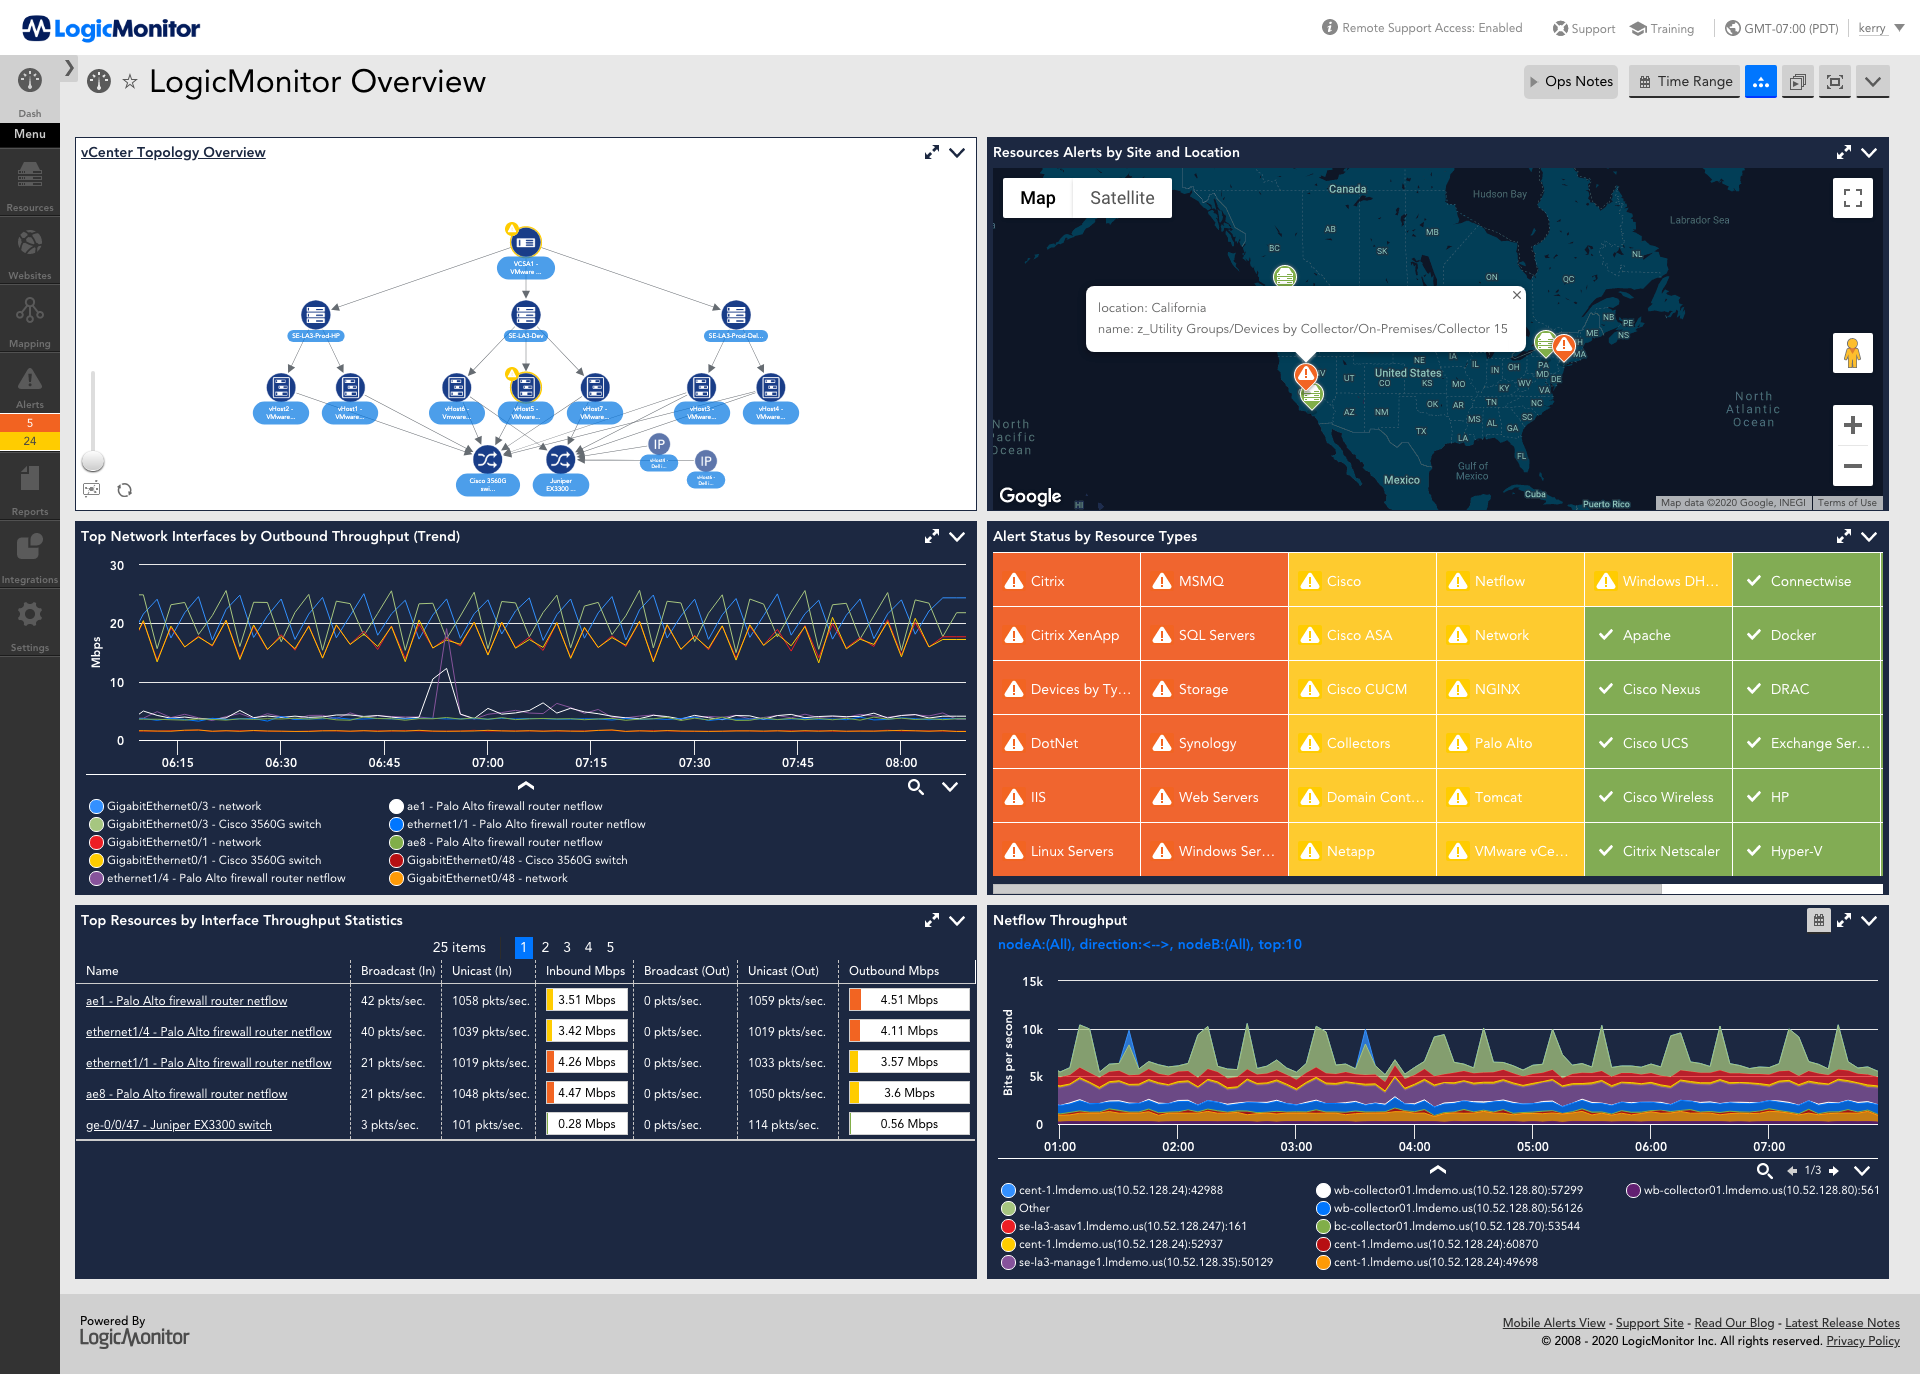 LogicMonitor Overview Dashboard